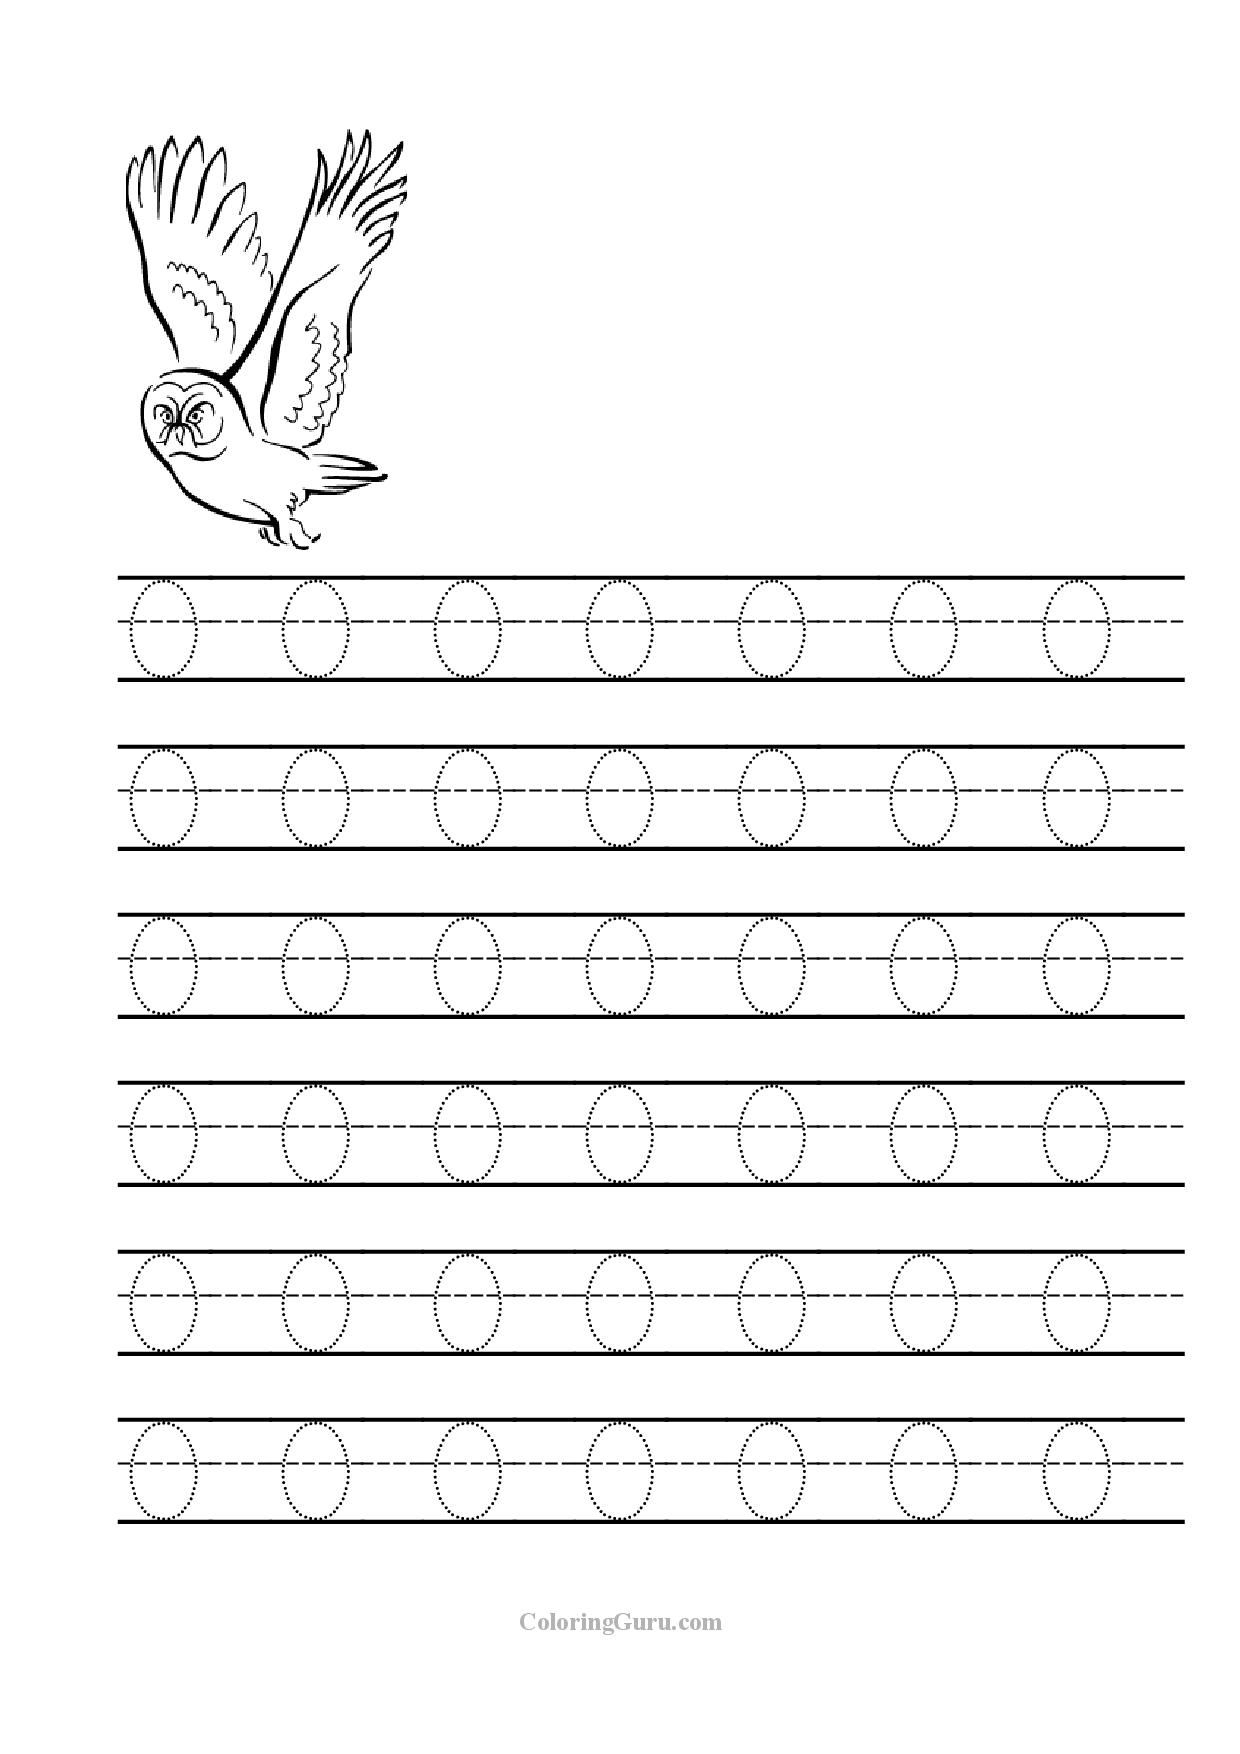 Tracing_Letter_O_Worksheets_For_Preschool 1,240×1,754